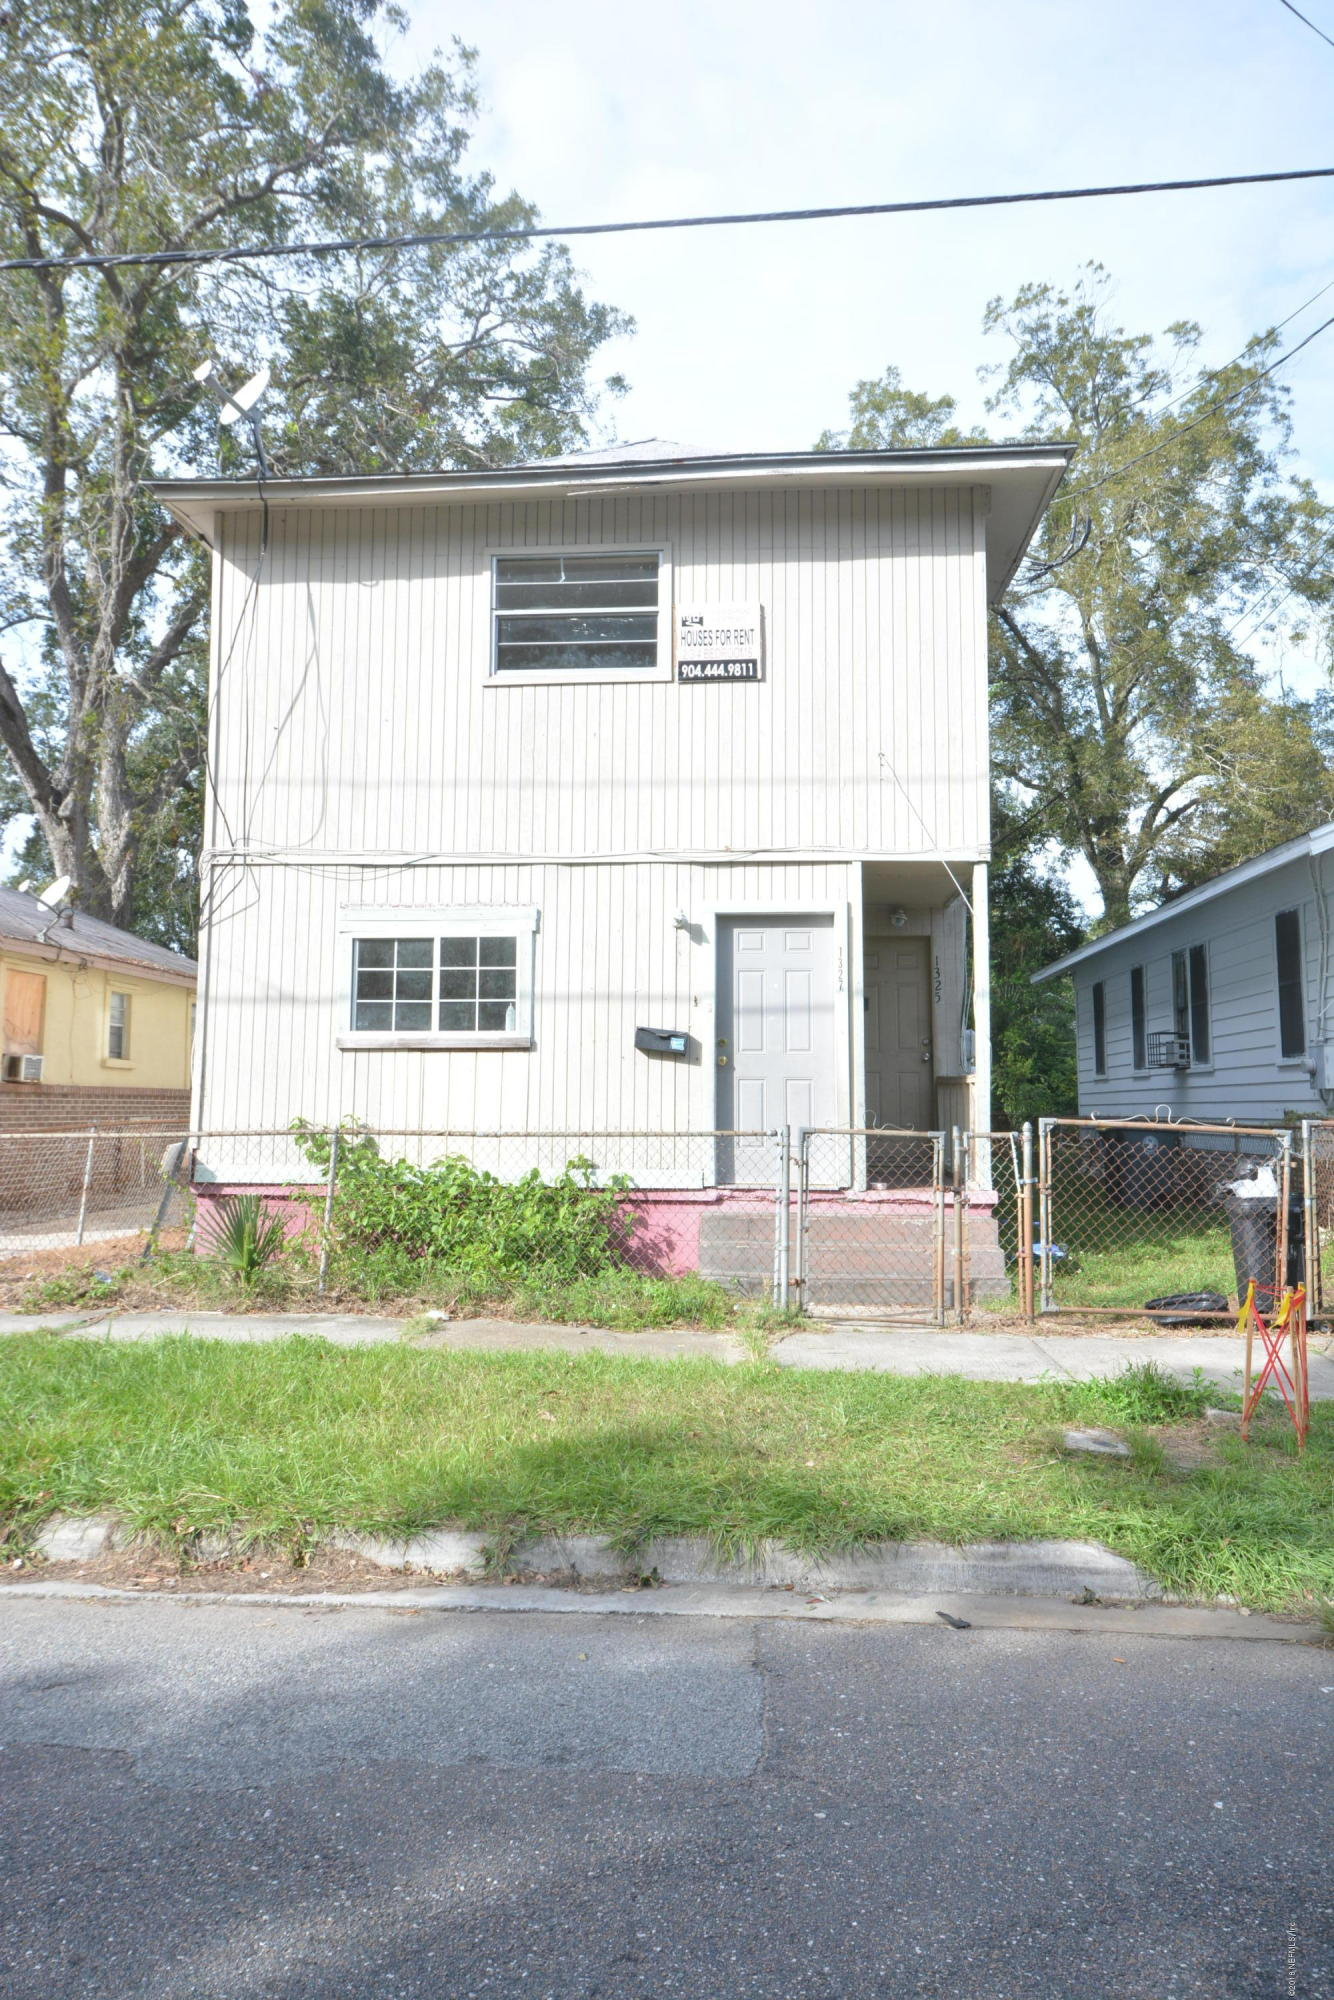 1327 23RD, JACKSONVILLE, FLORIDA 32209, 6 Bedrooms Bedrooms, ,2 BathroomsBathrooms,Commercial,For sale,23RD,968408